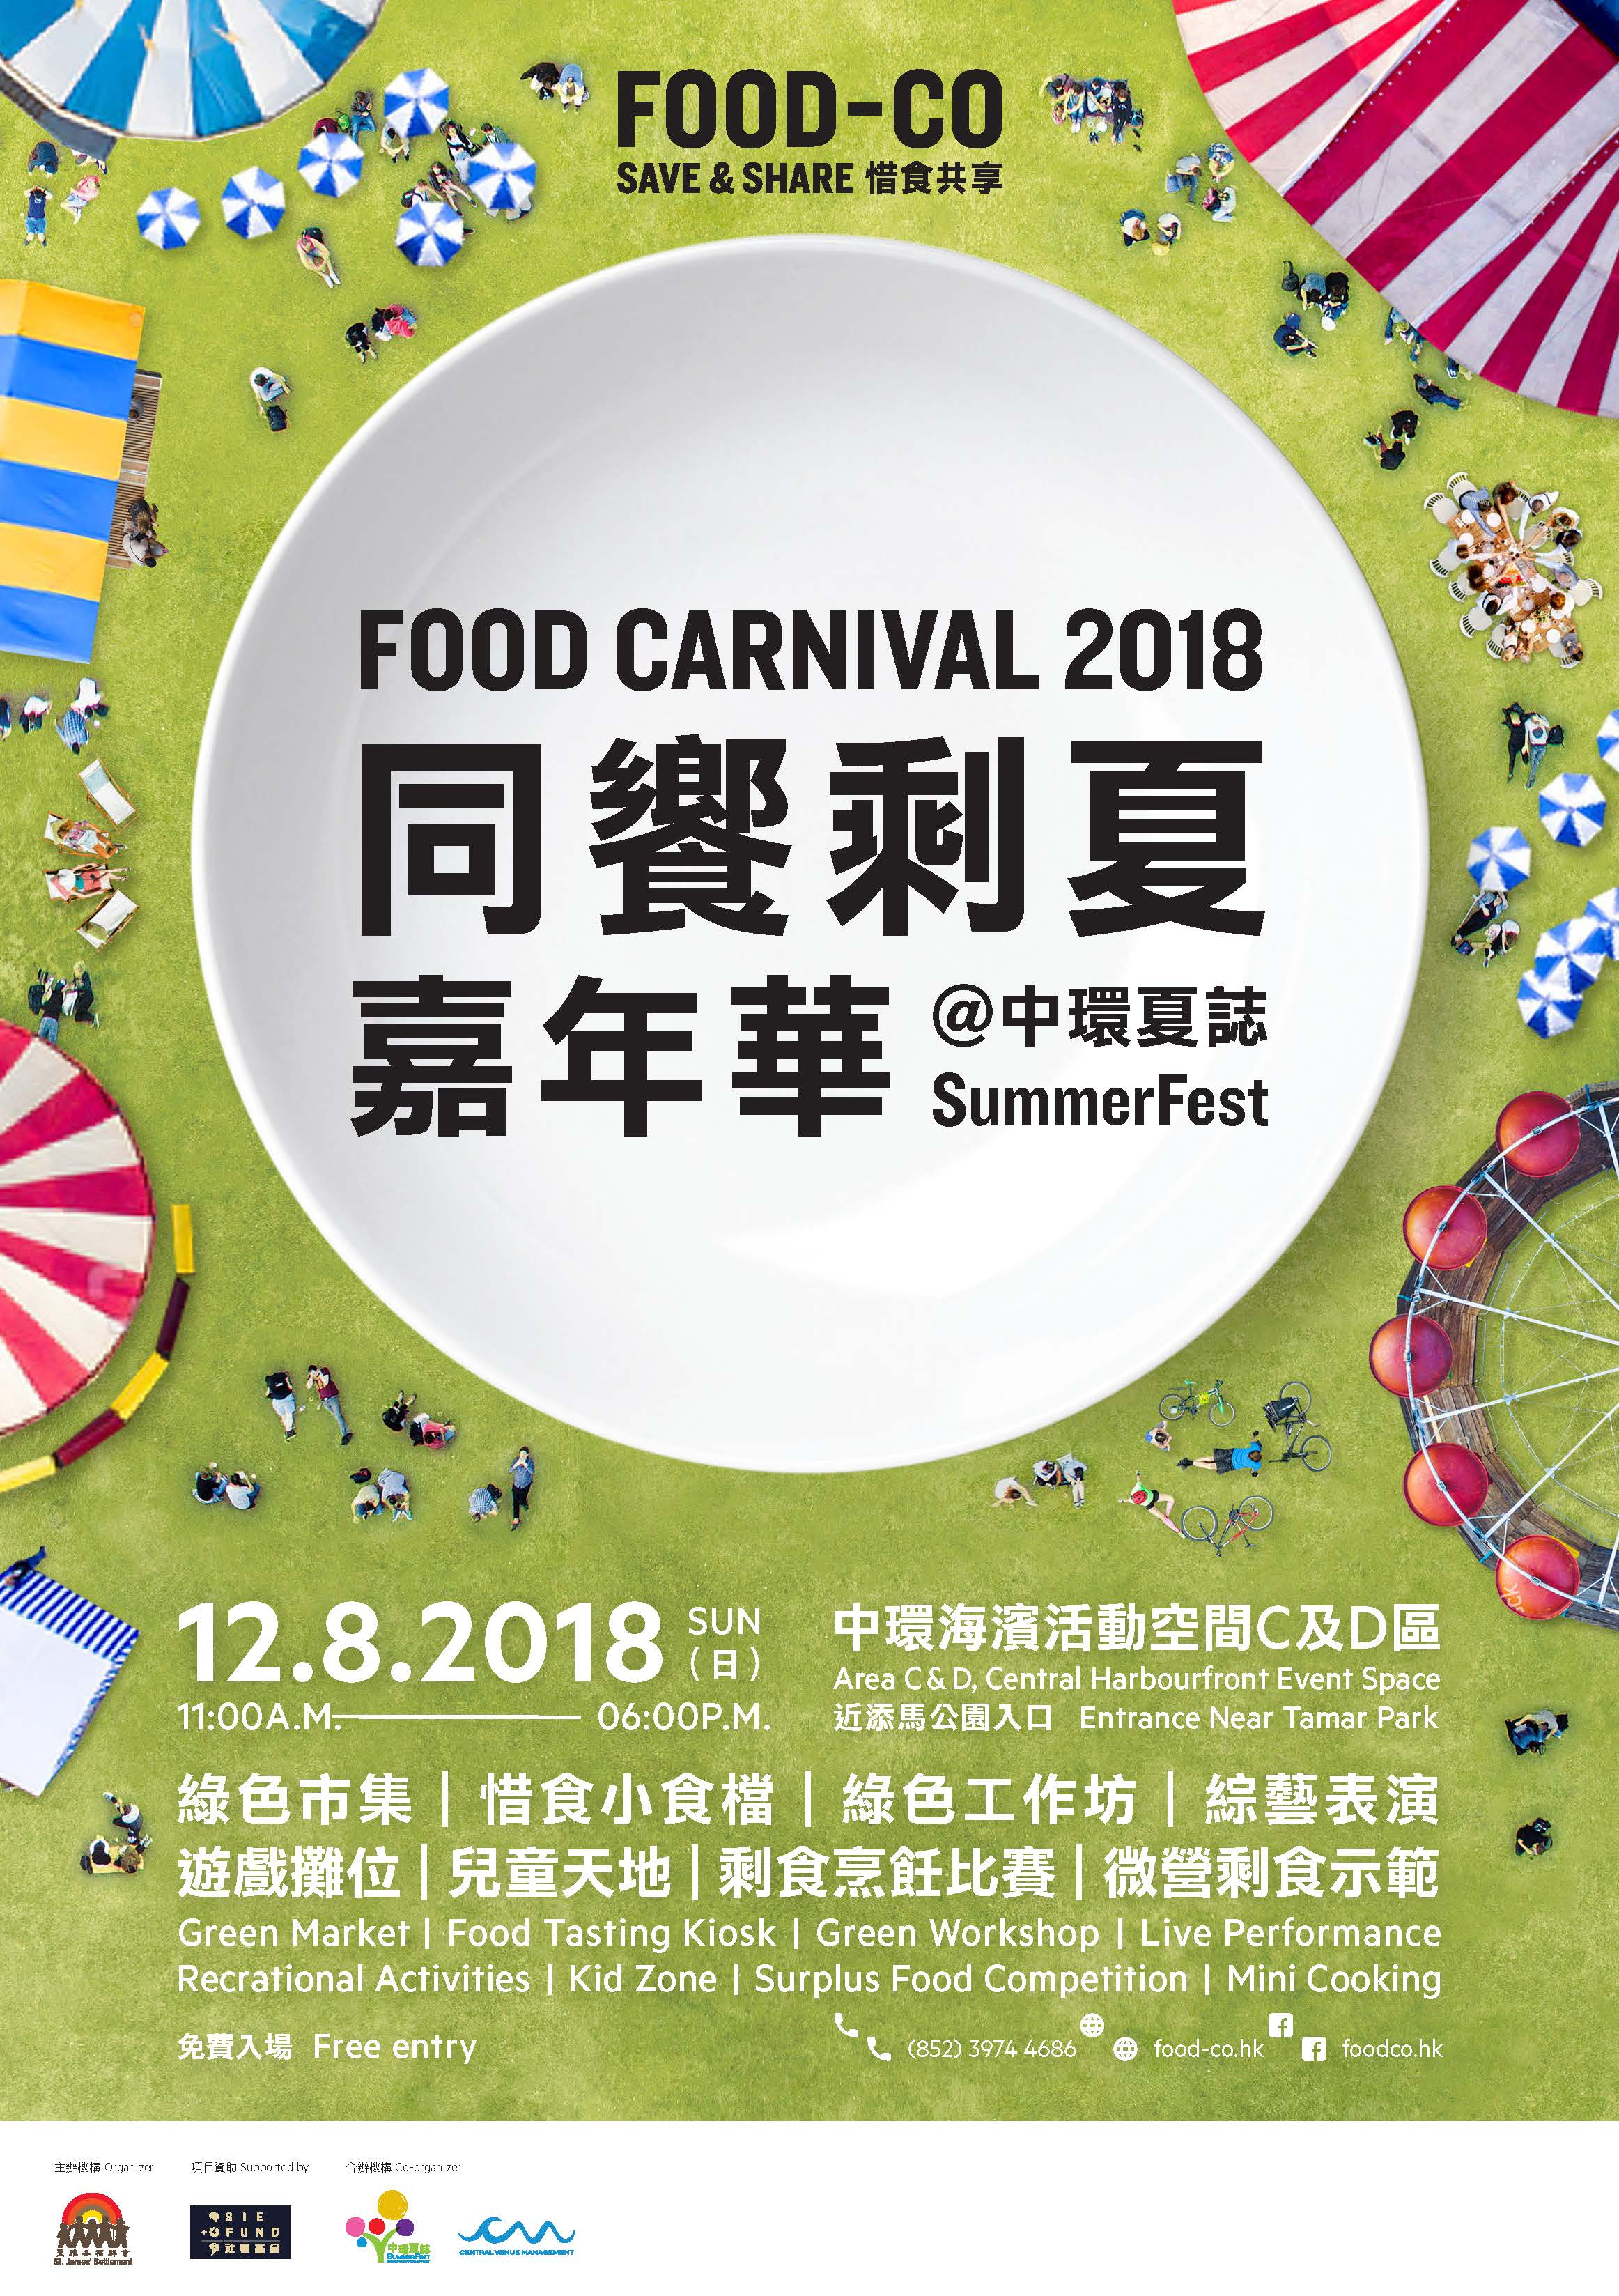 180525_food_co_carnival_poster_B.1